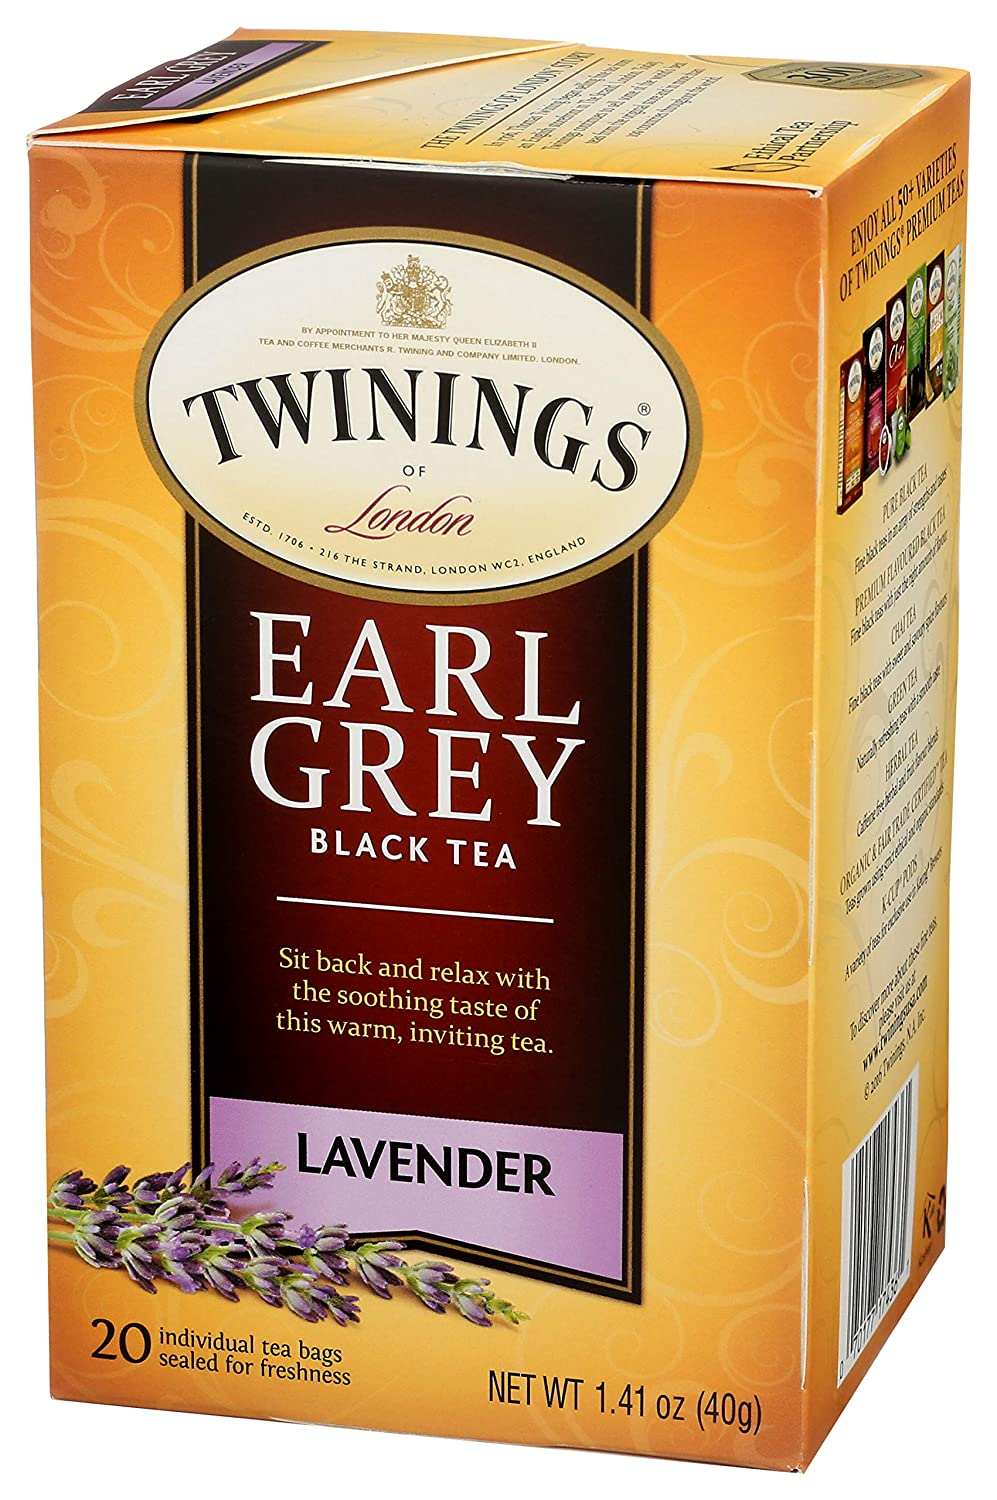 Twining Tea Lavender Earl Grey, 1.41 oz (20 COUNT)